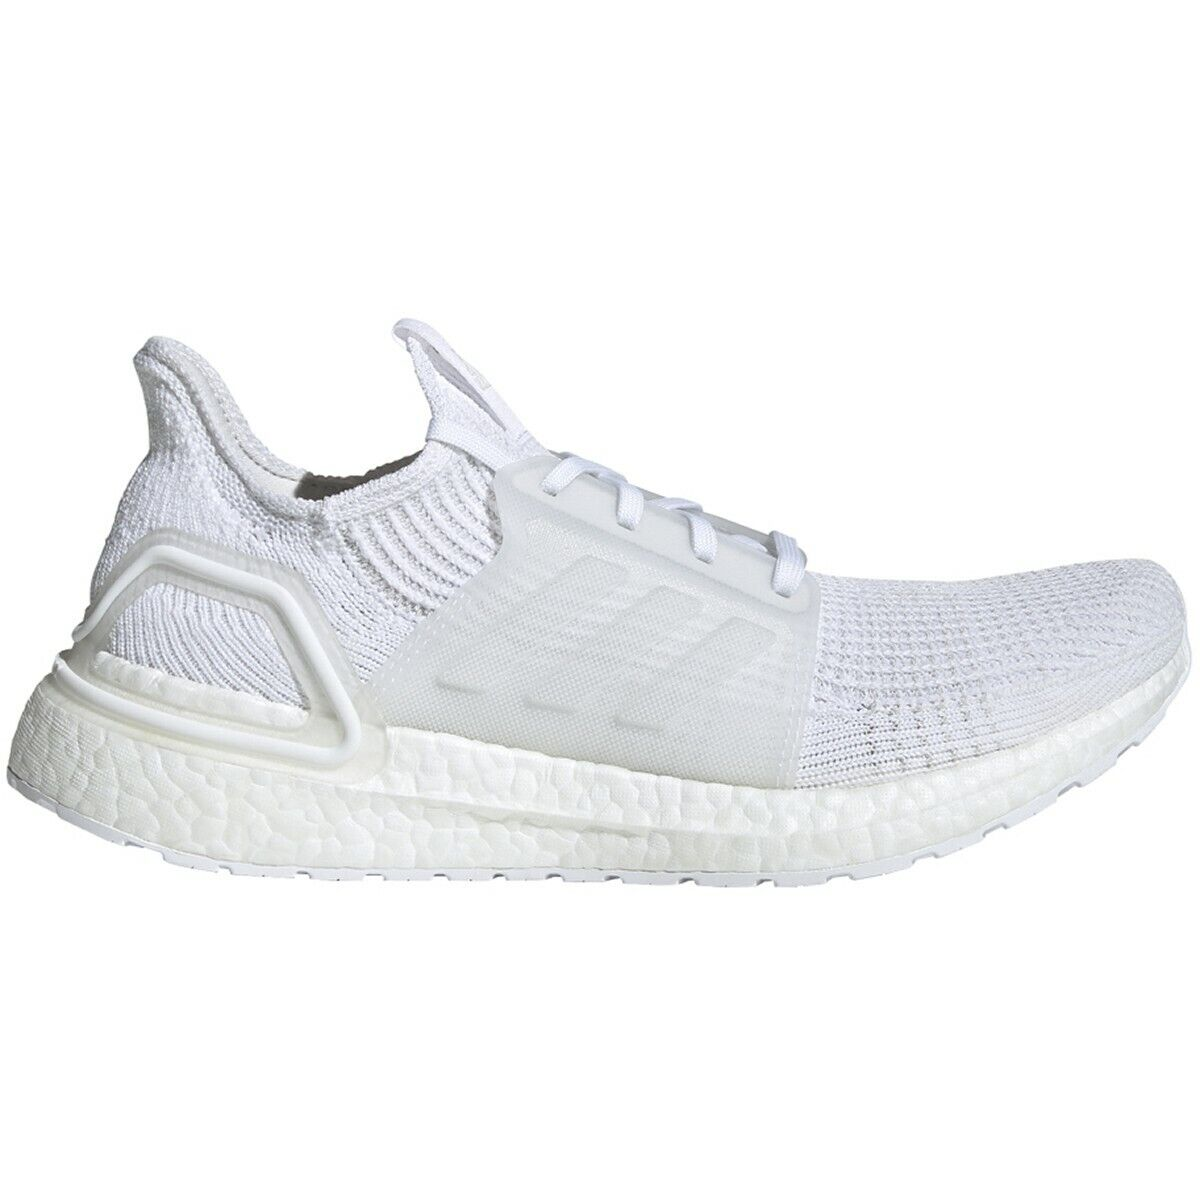 Adidas Men's Adidas Ultra Boost 19 - NEW IN BOX - FREE SHIPPING - White G54008 +